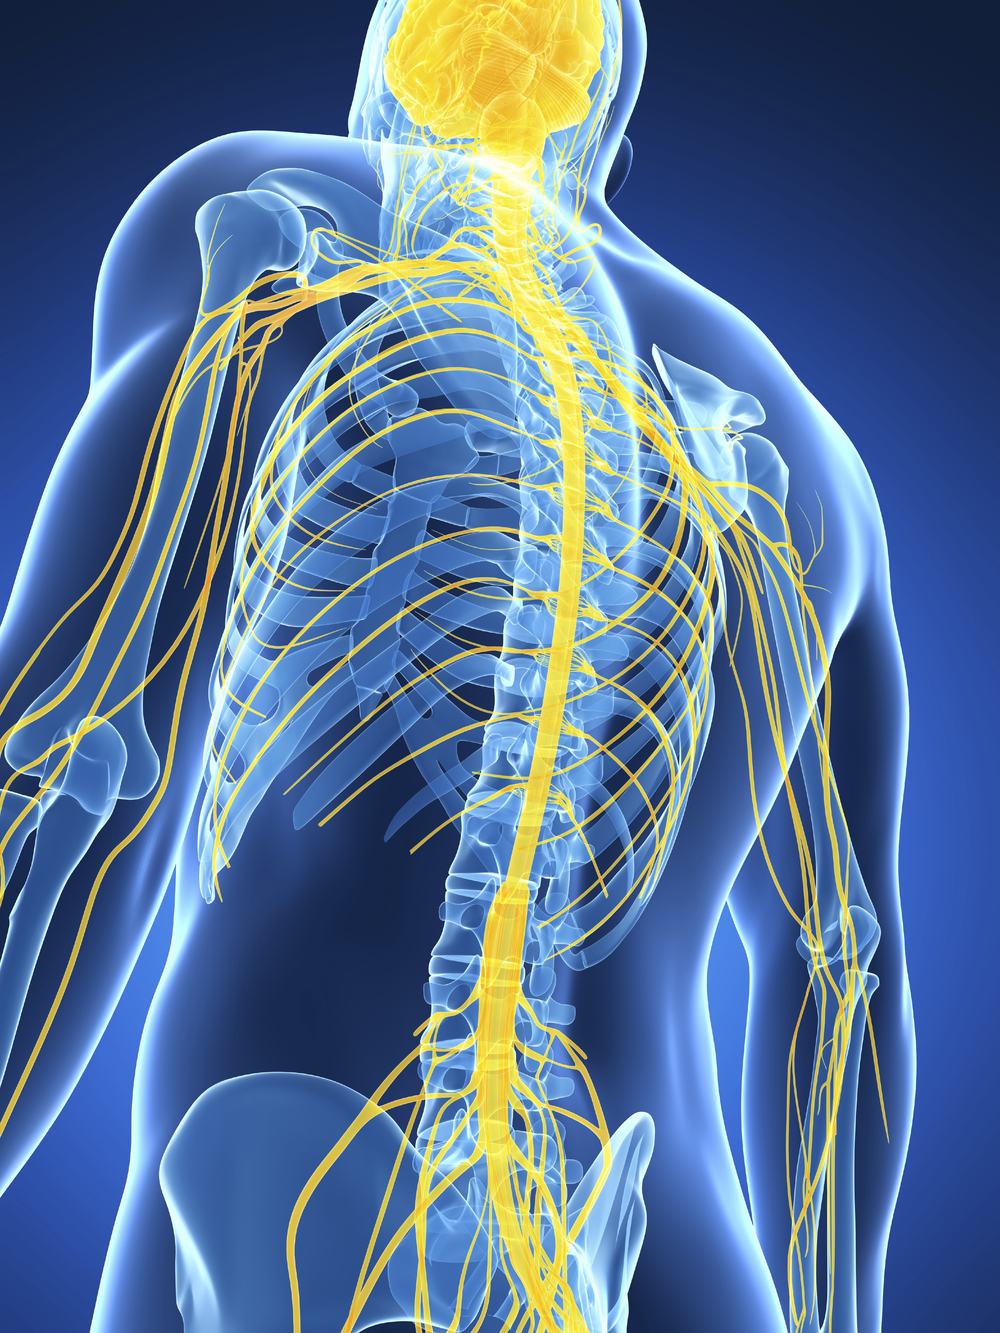 Your body's ability to respond, balance and recover are all controlled by the Central Nervous System. A spinal assessment can help ensure it's proper functioning.